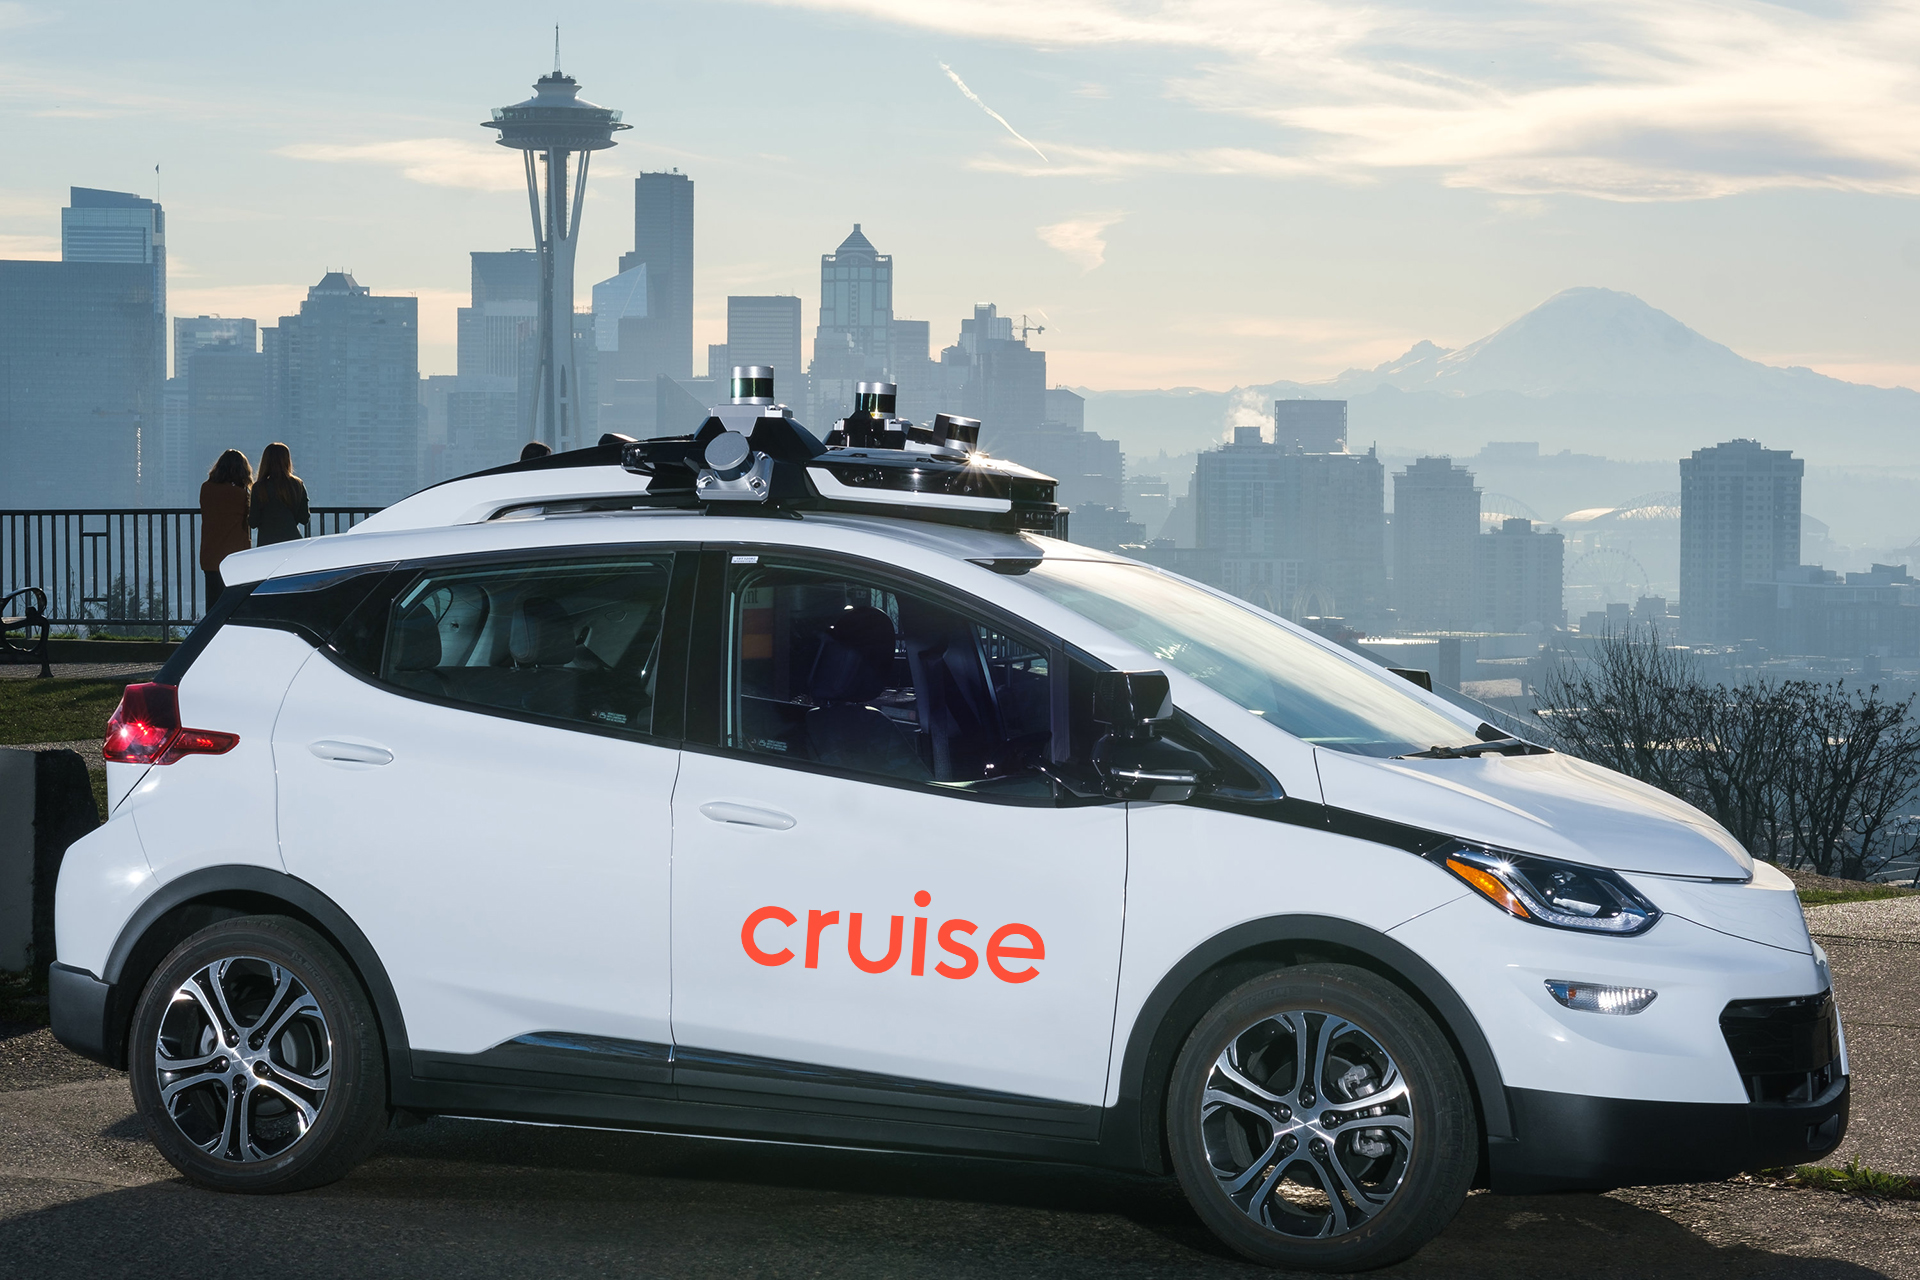 Microsoft teams up with GM-backed self-driving technology startup Cruise